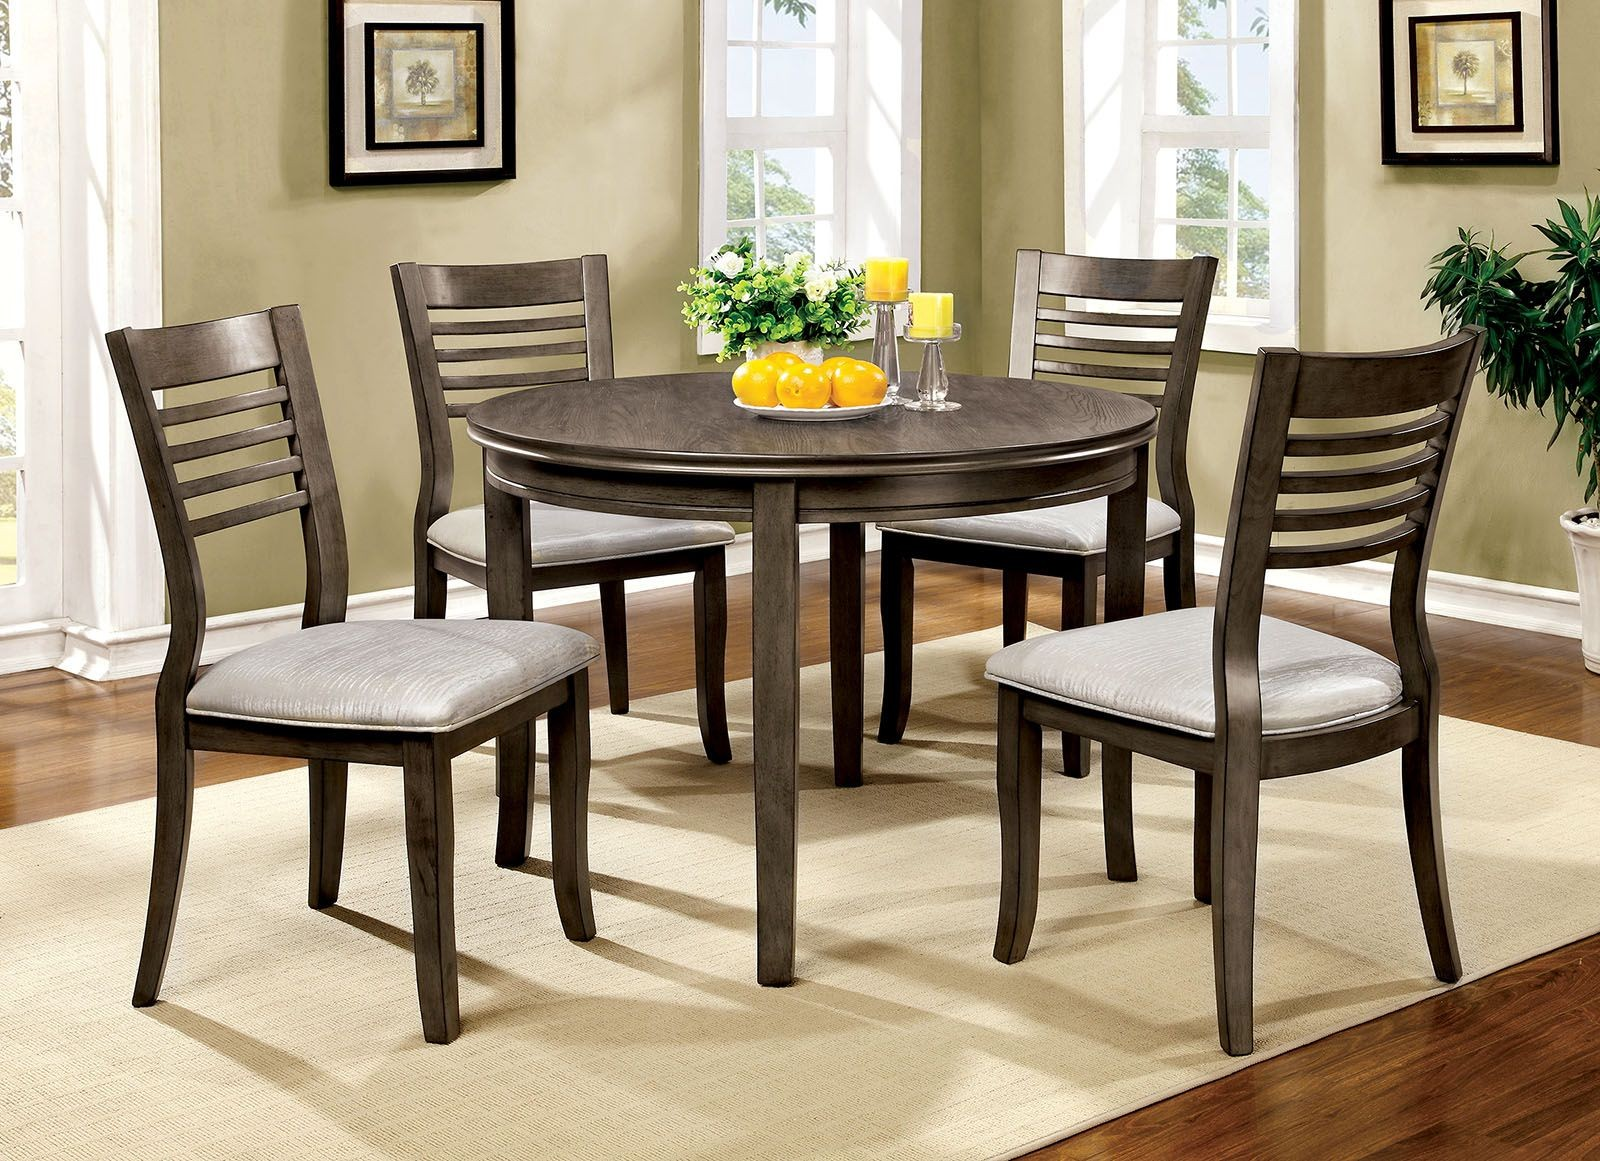 dwight iii 42 round dining room set cm3988gy rt furniture of